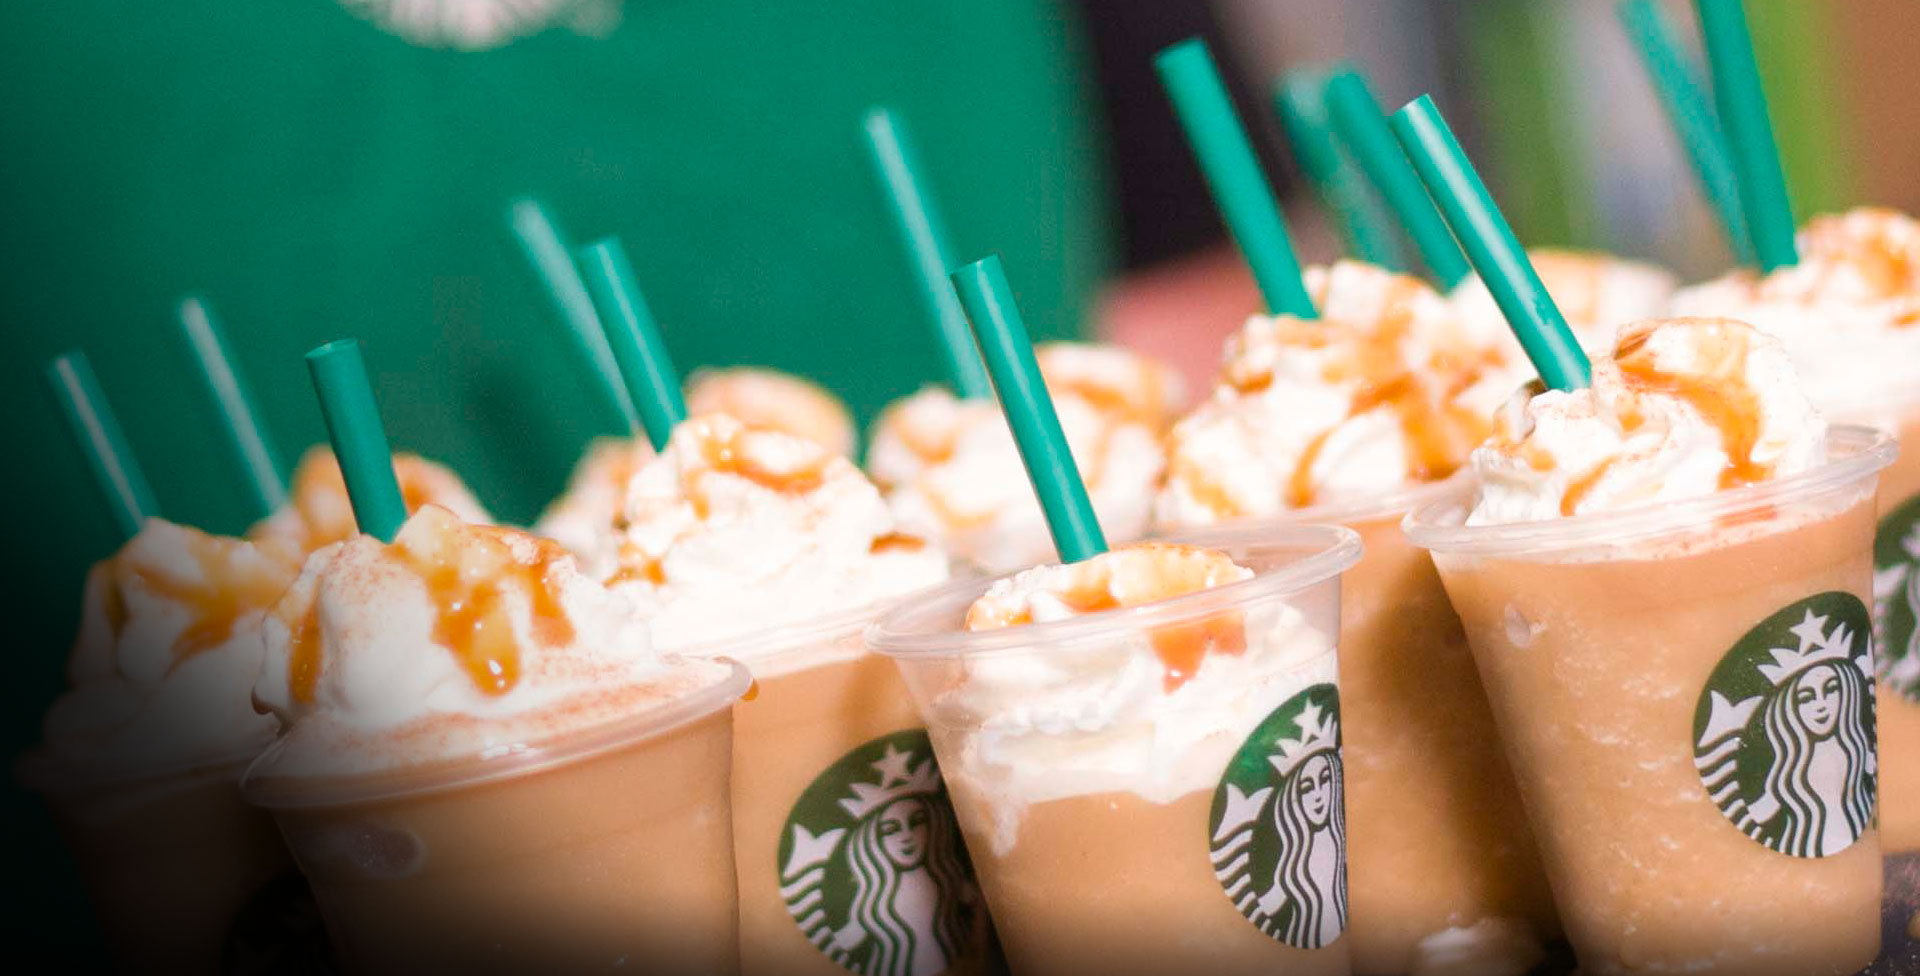 Starbucks cold drinks